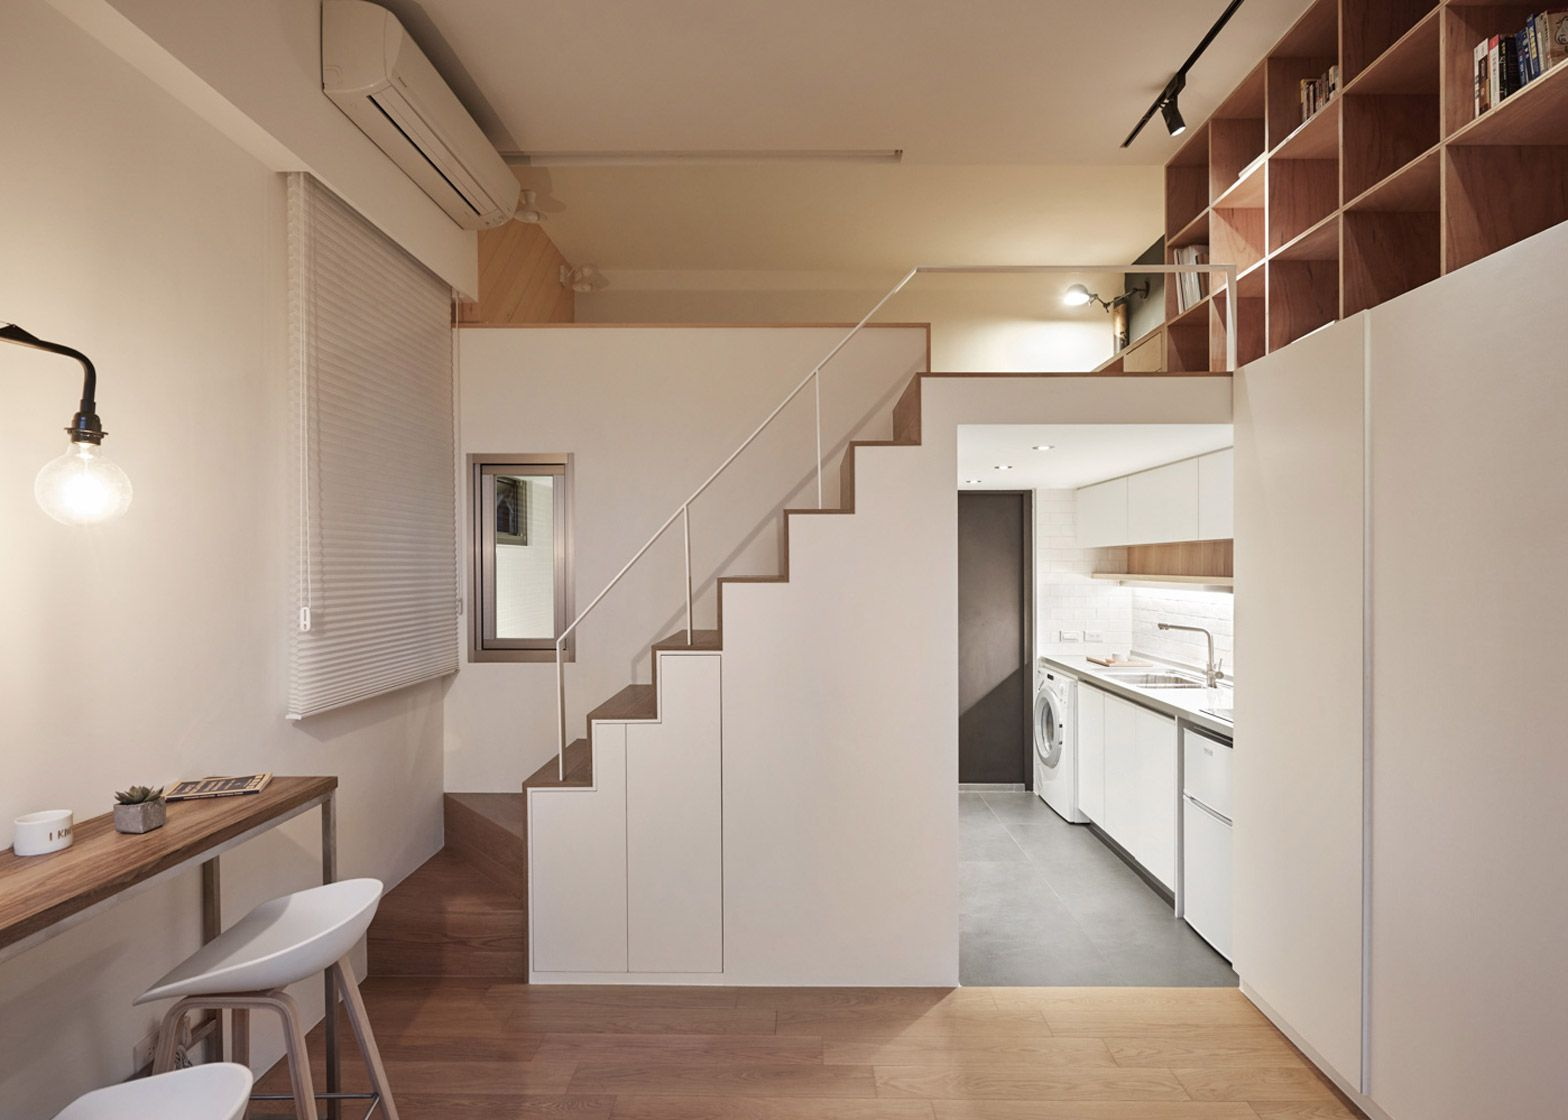 Taiwanese Studio A Little Design Has Renovated A 22 Metre Square